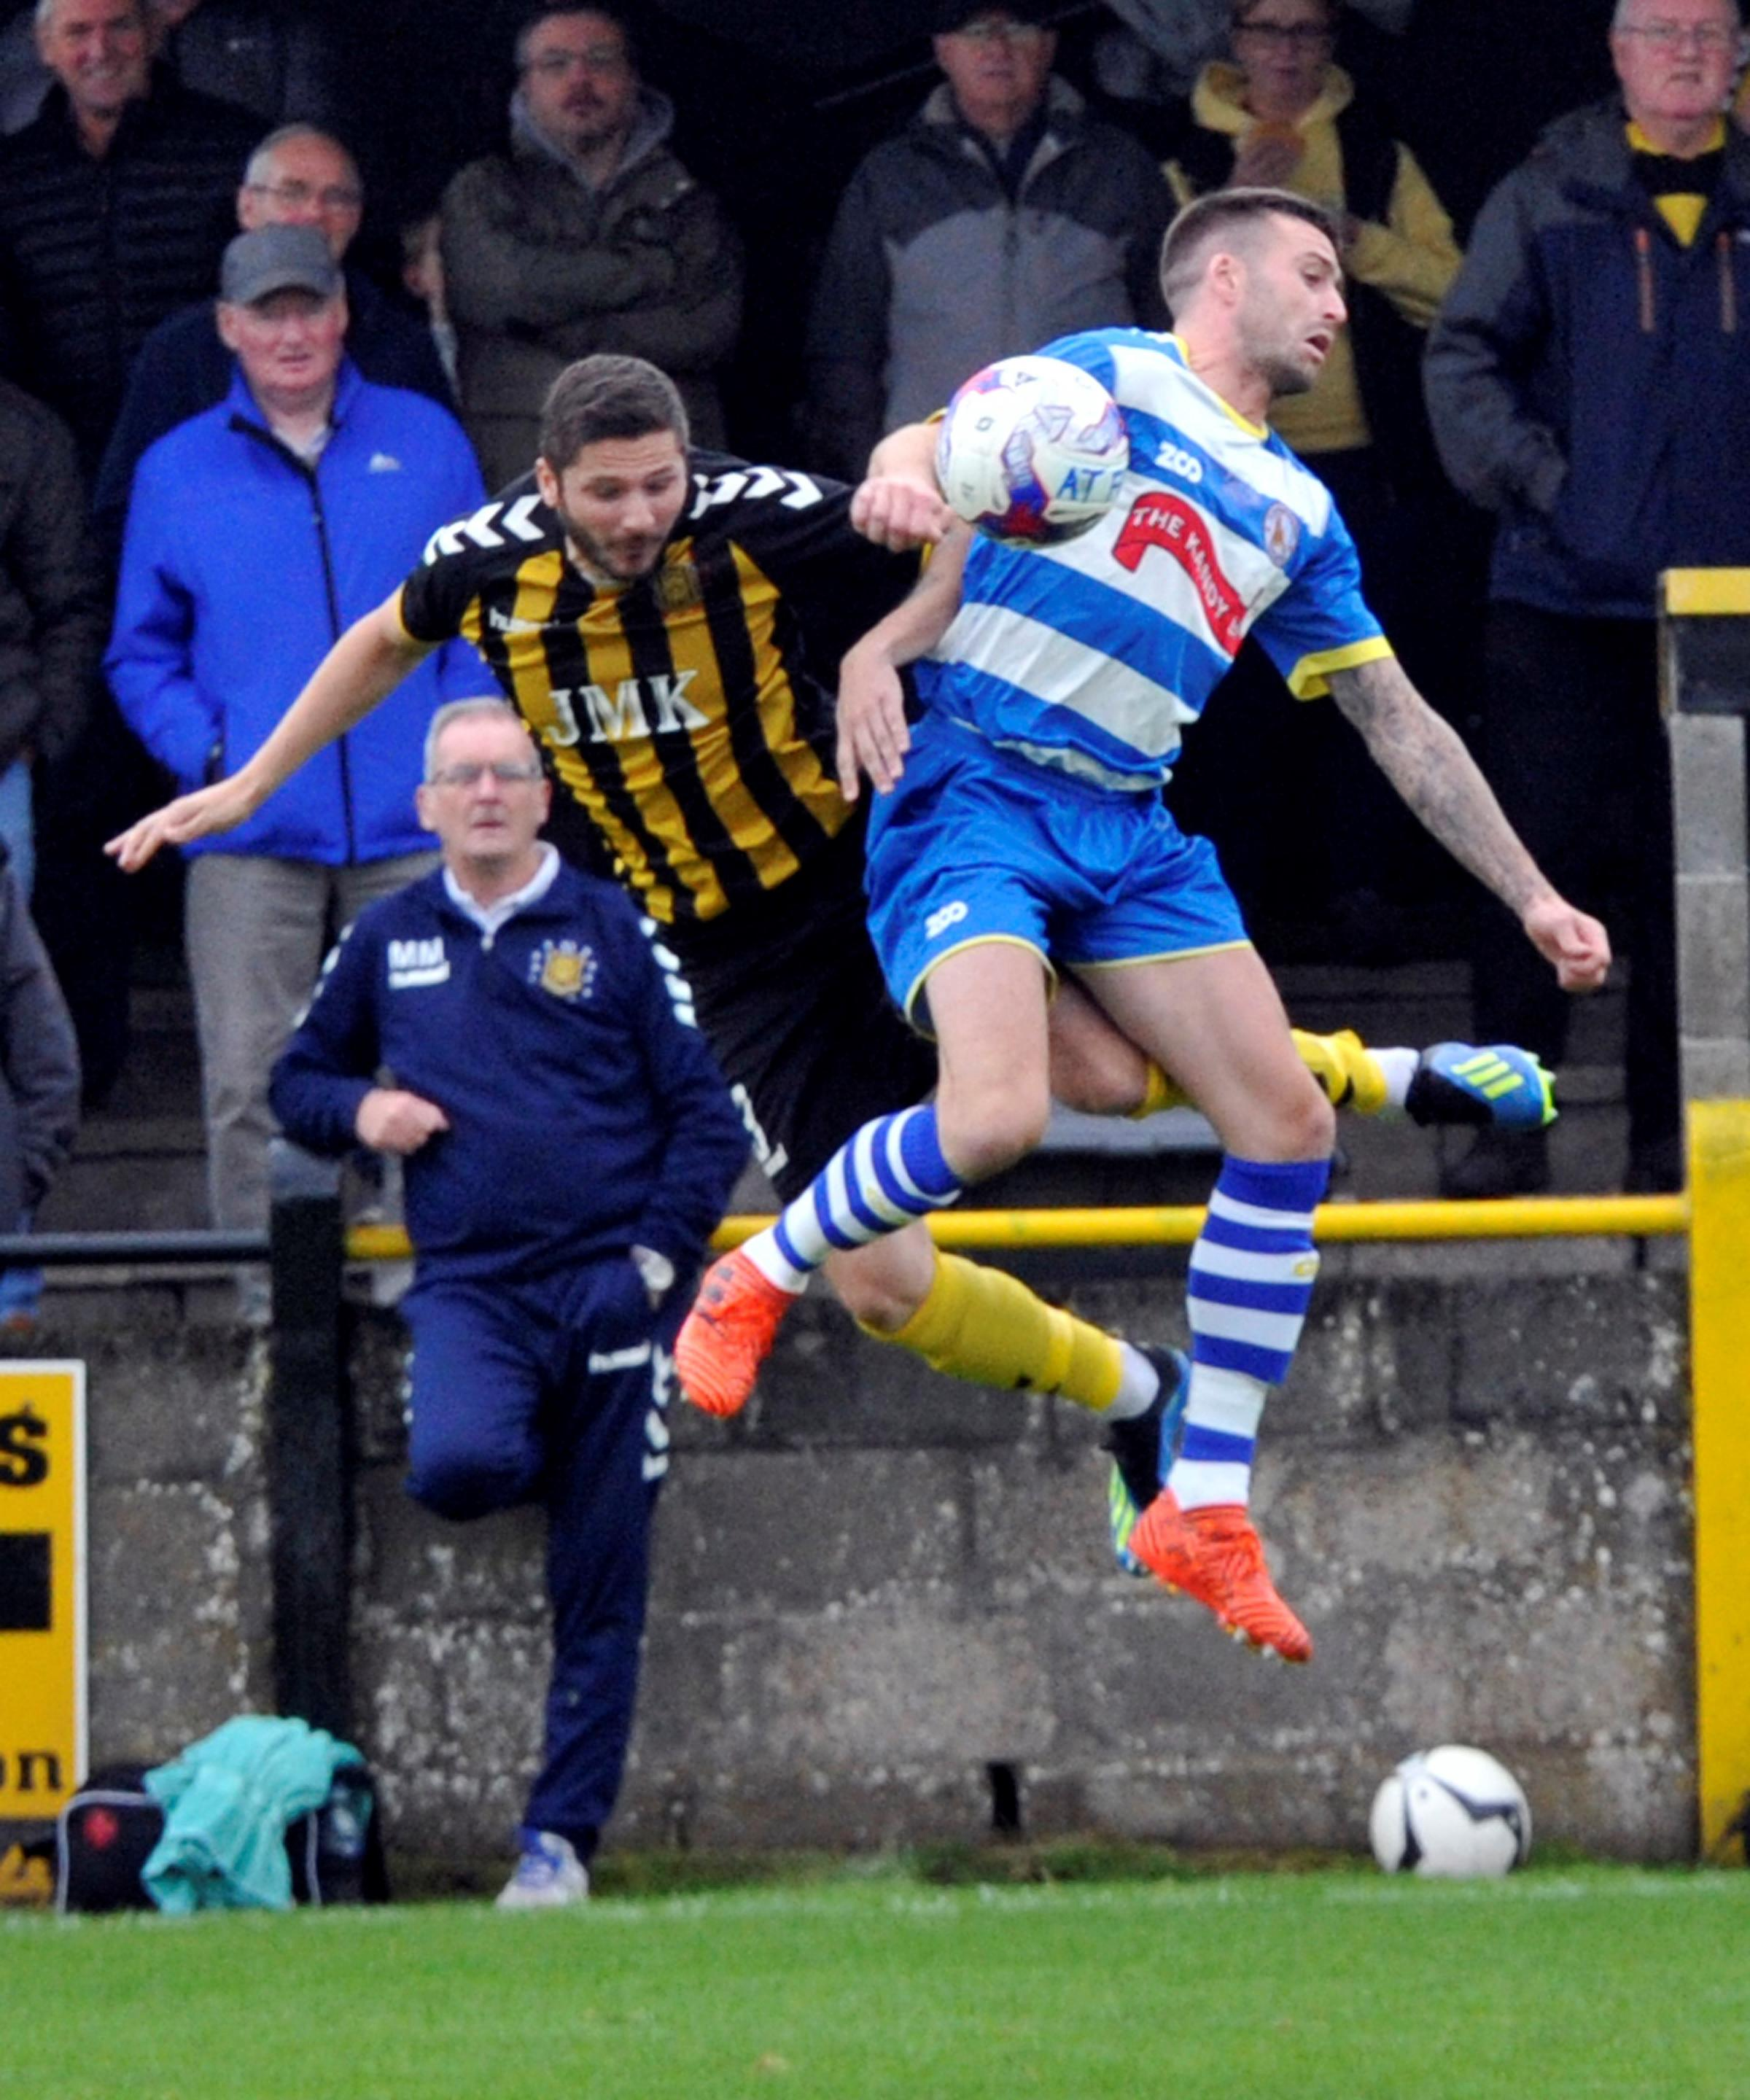 PENALTY KING: Gordon Pope in action for Auchinleck Talbot against Kilwinning Rangers.